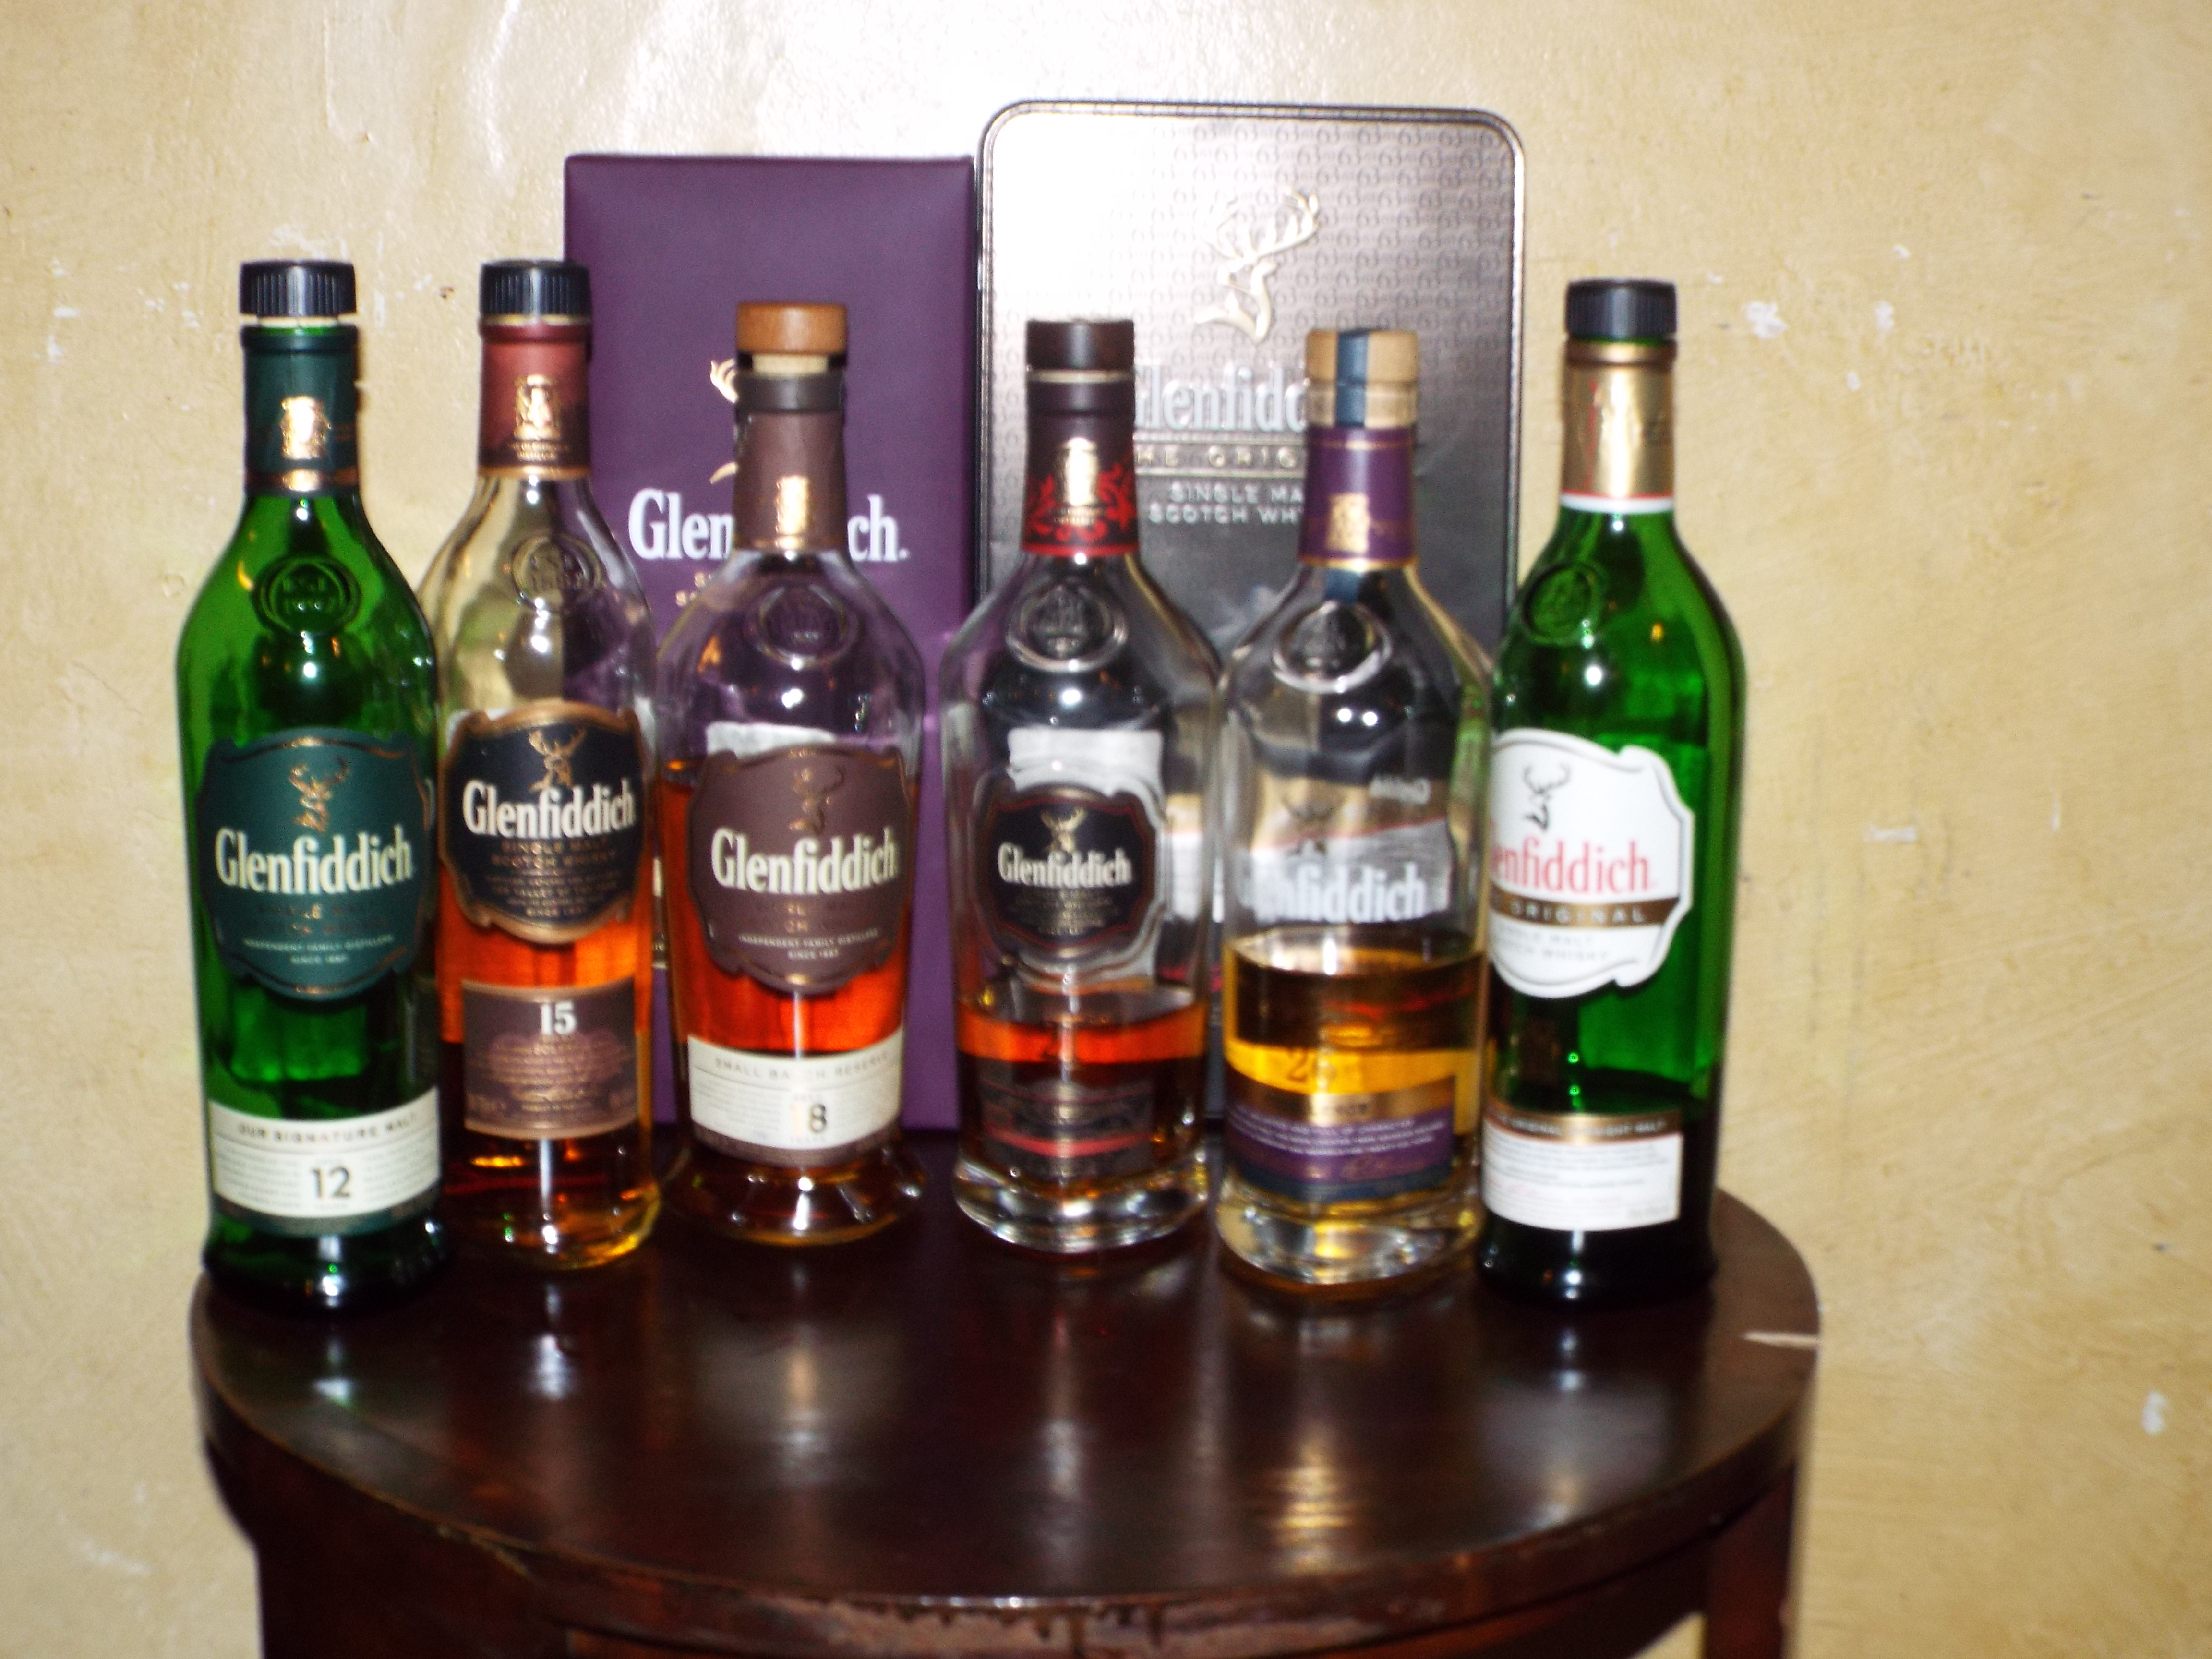 Great Galloping Glasses of Grain – Glenfiddich Evening with Birmingham Whisky Club